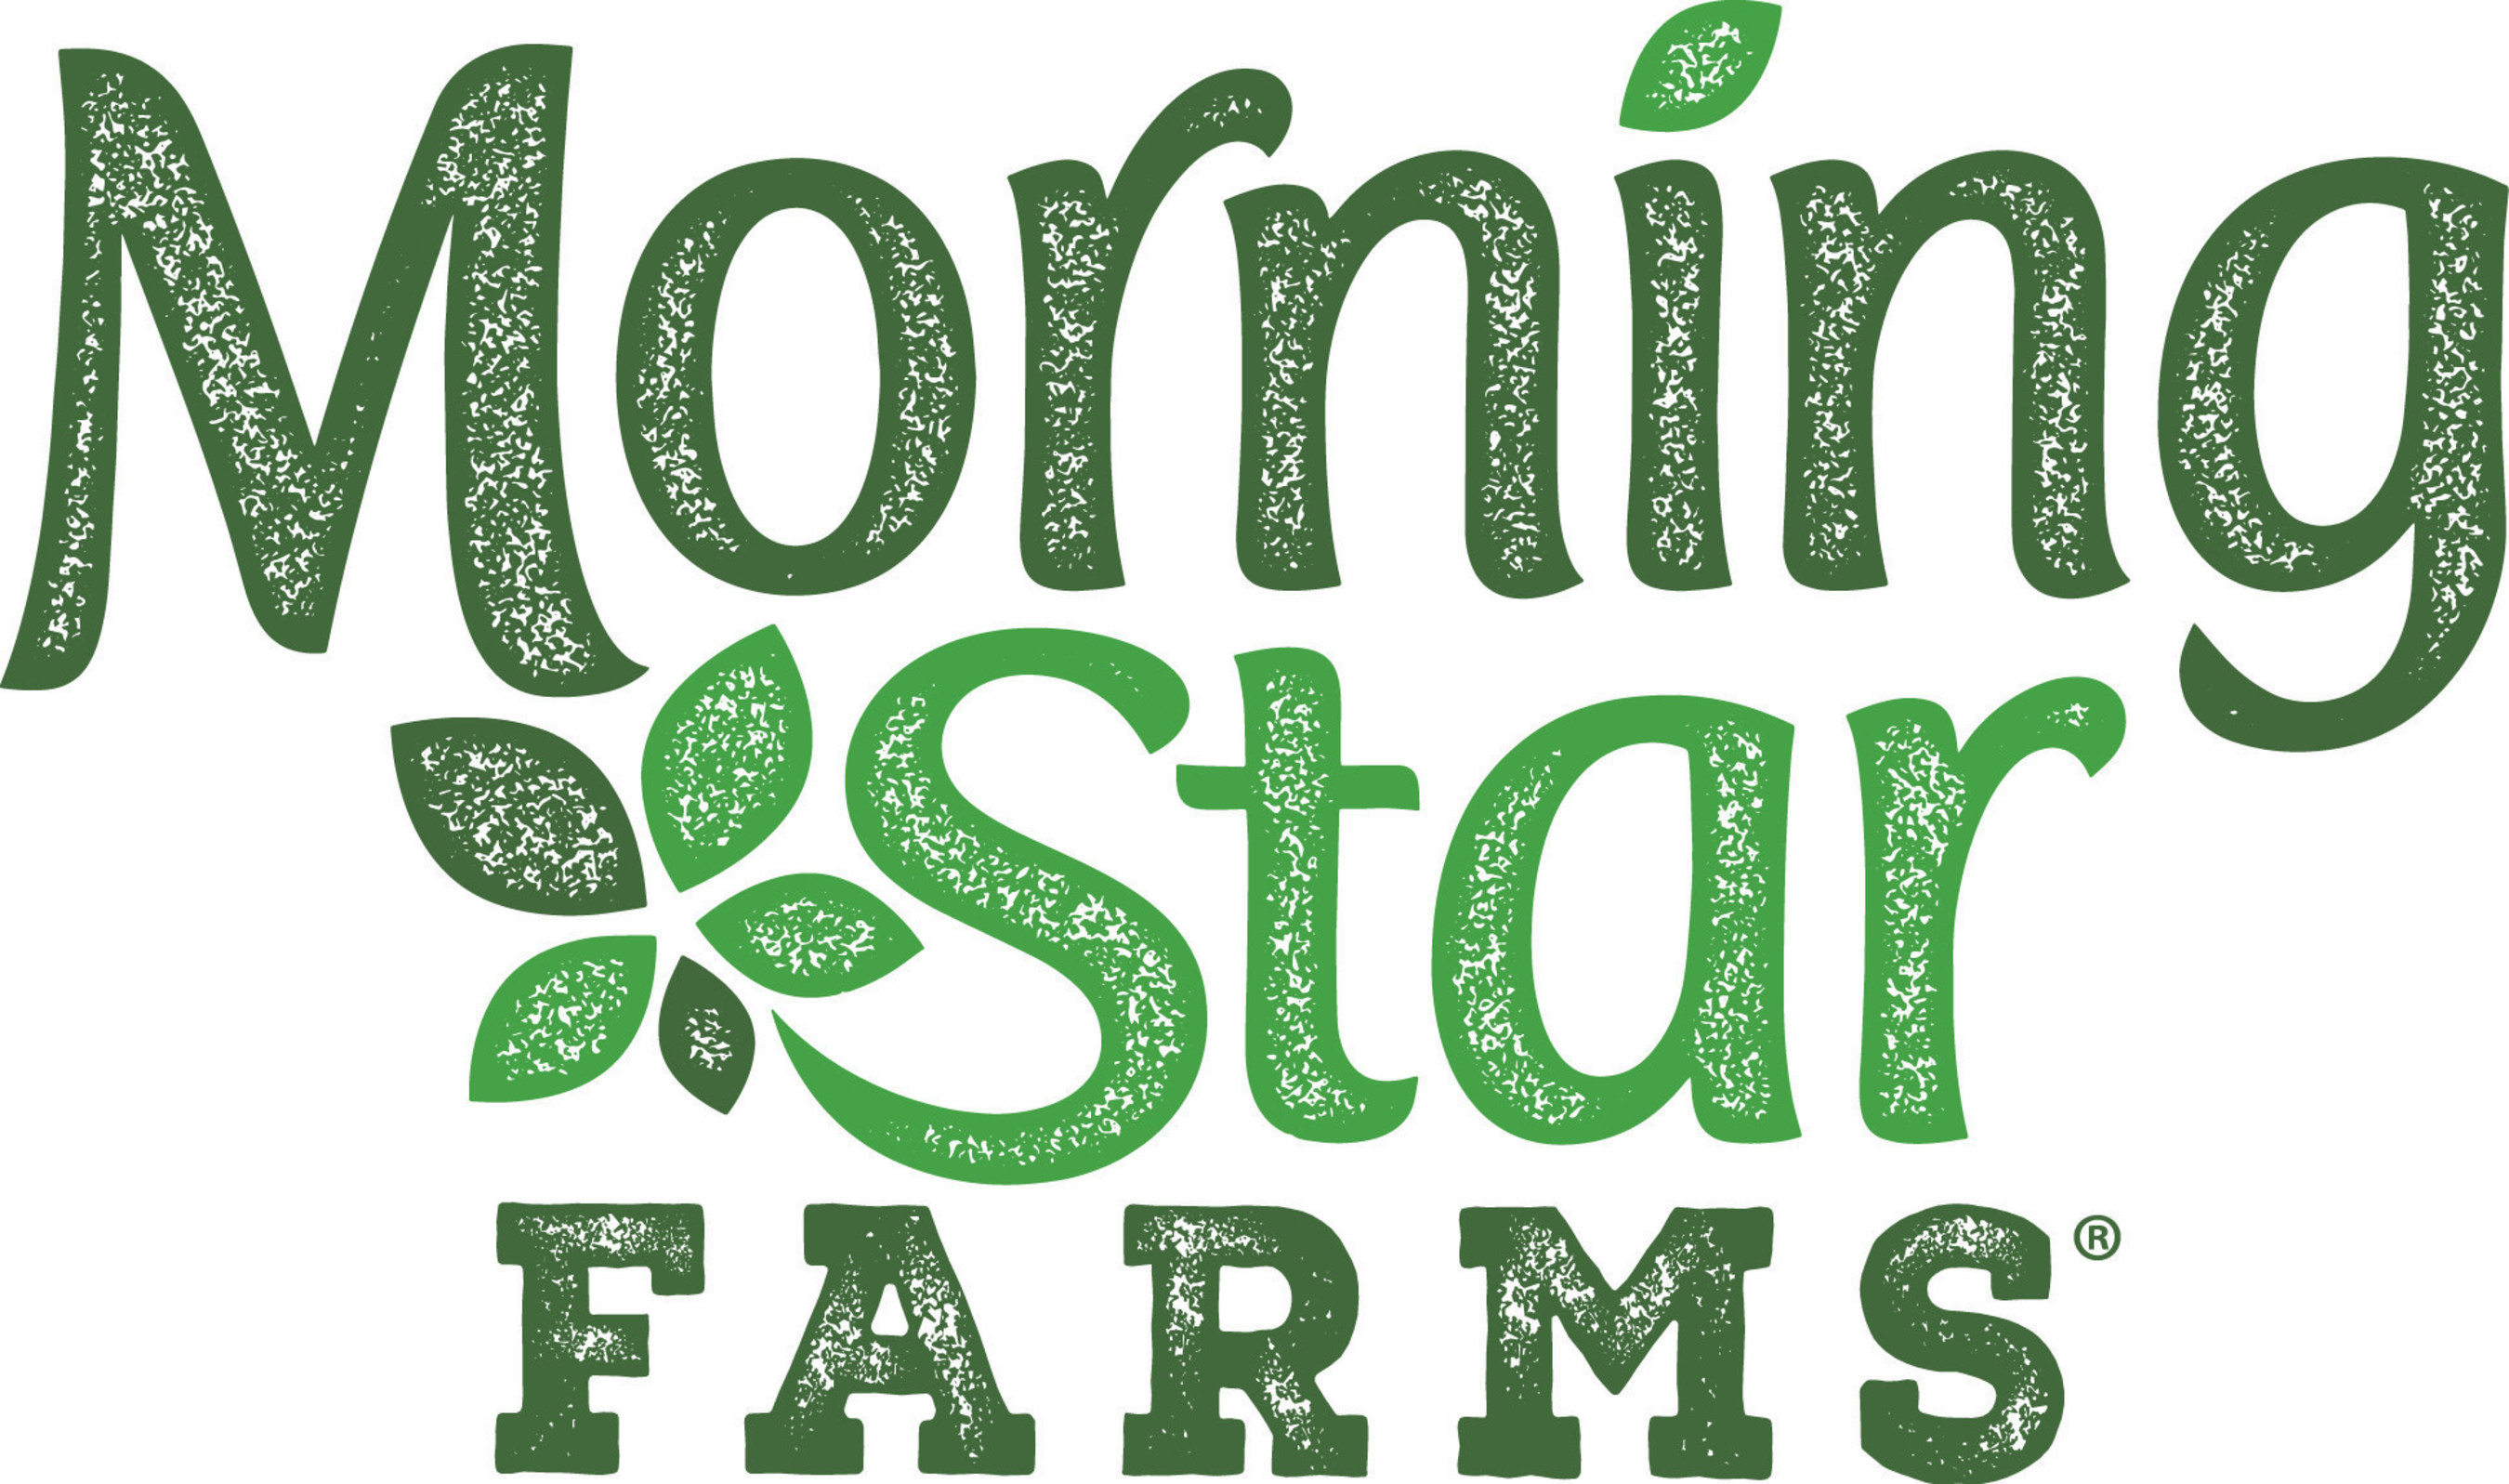 Morningstar Farms Introduces Veg Effect Calculator To Instantly See Environmental Impact Of Eating Less Meat